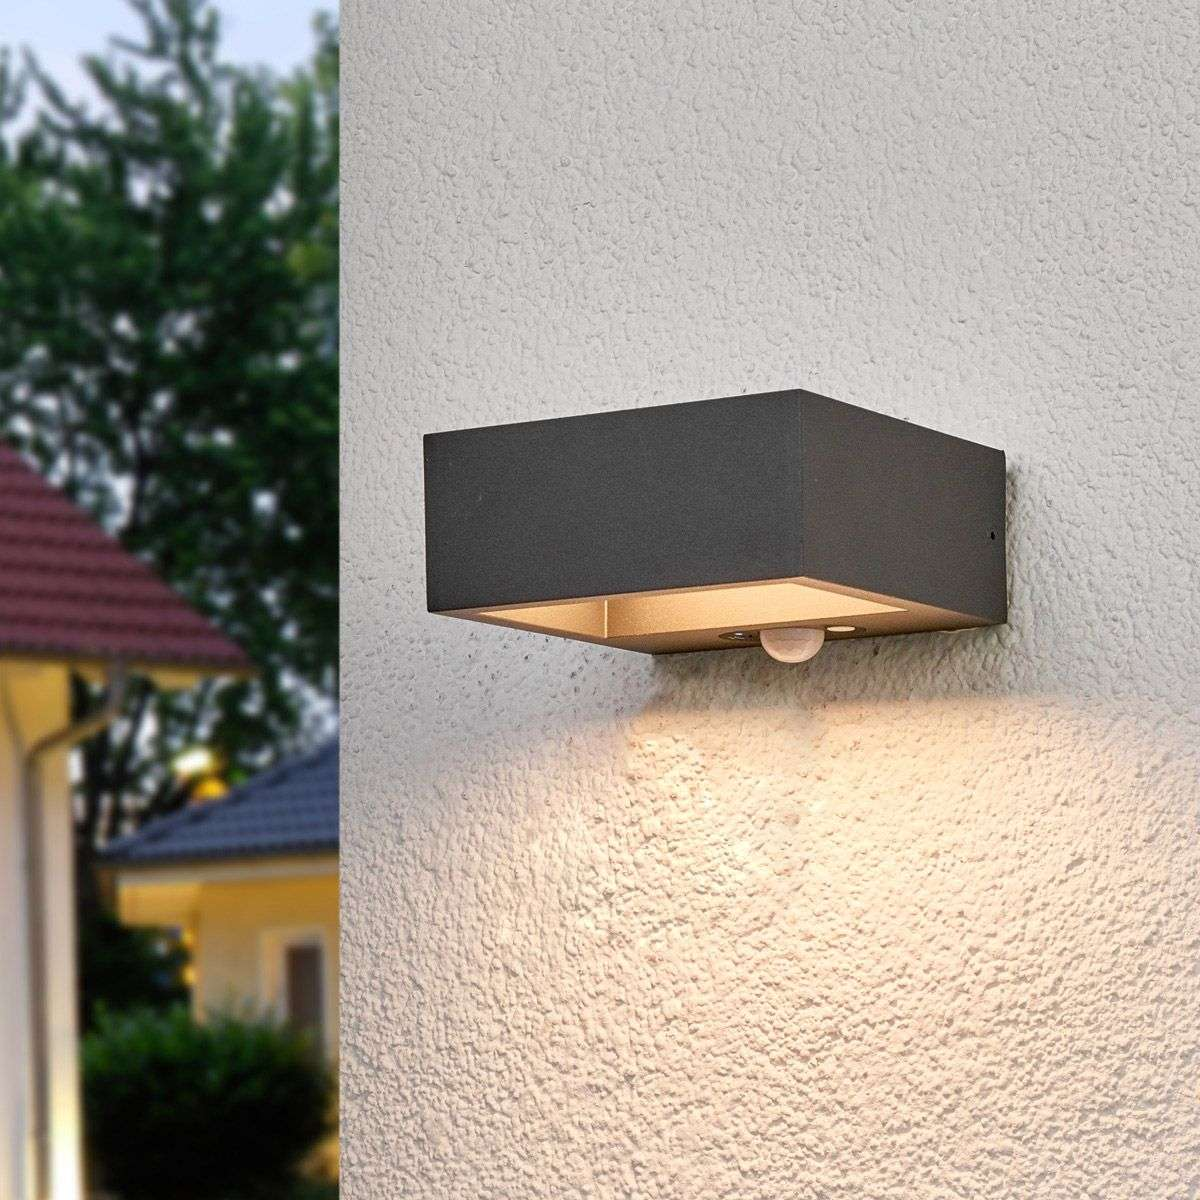 Solar powered led outdoor wall light mahra sensor lights solar powered led outdoor wall light mahra sensor 9619074 31 mozeypictures Images